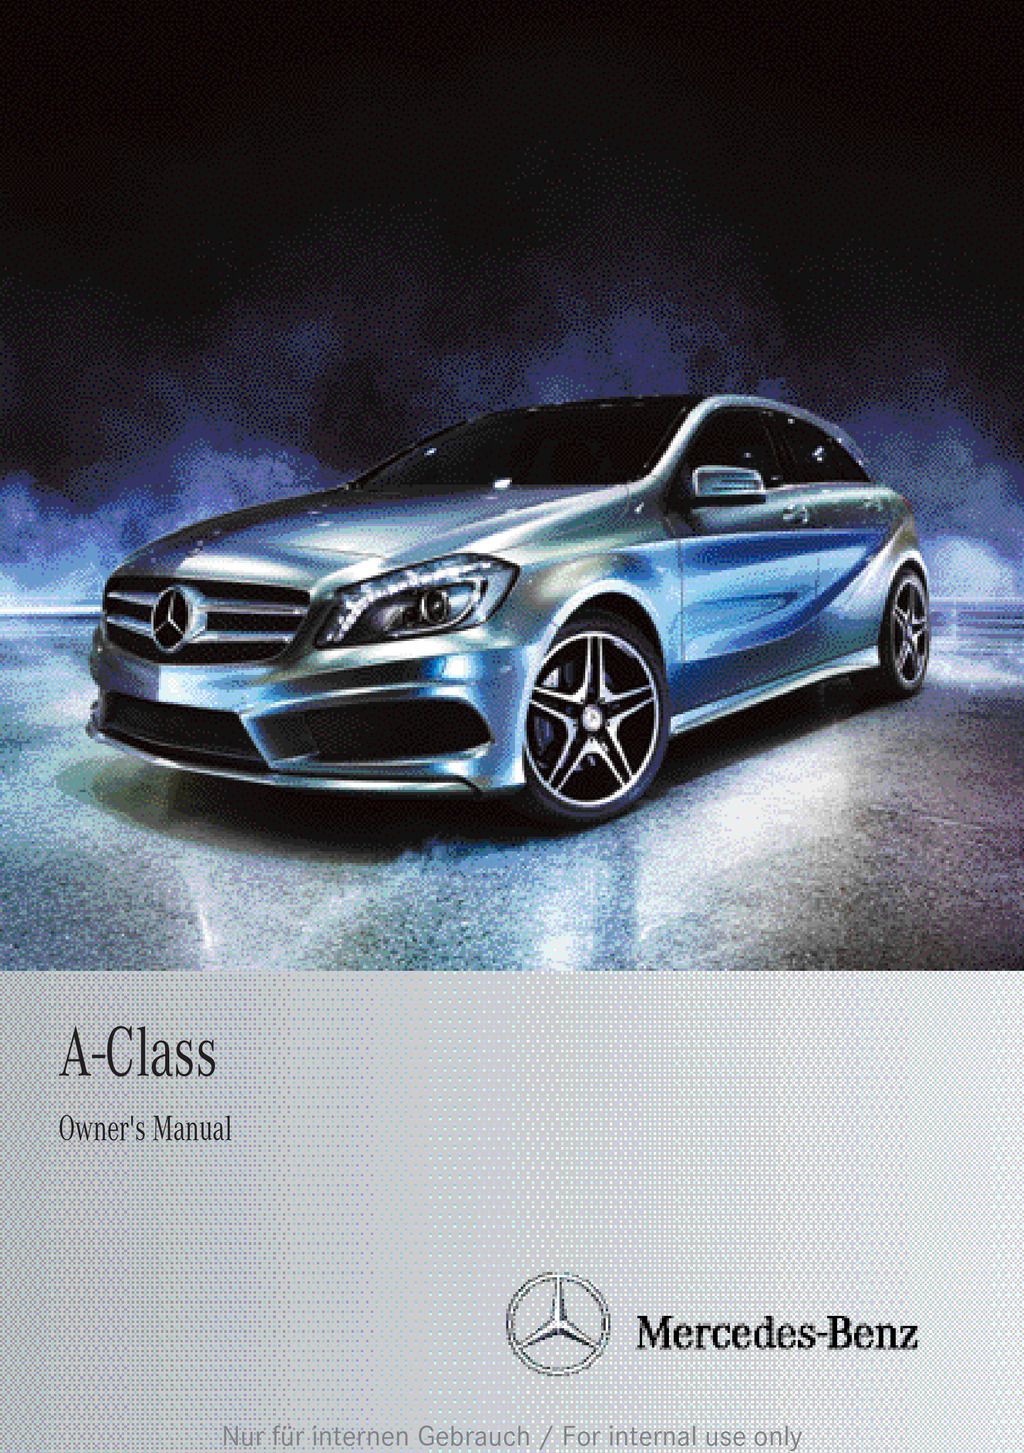 2012 Mercedes-Benz A Class owners manual